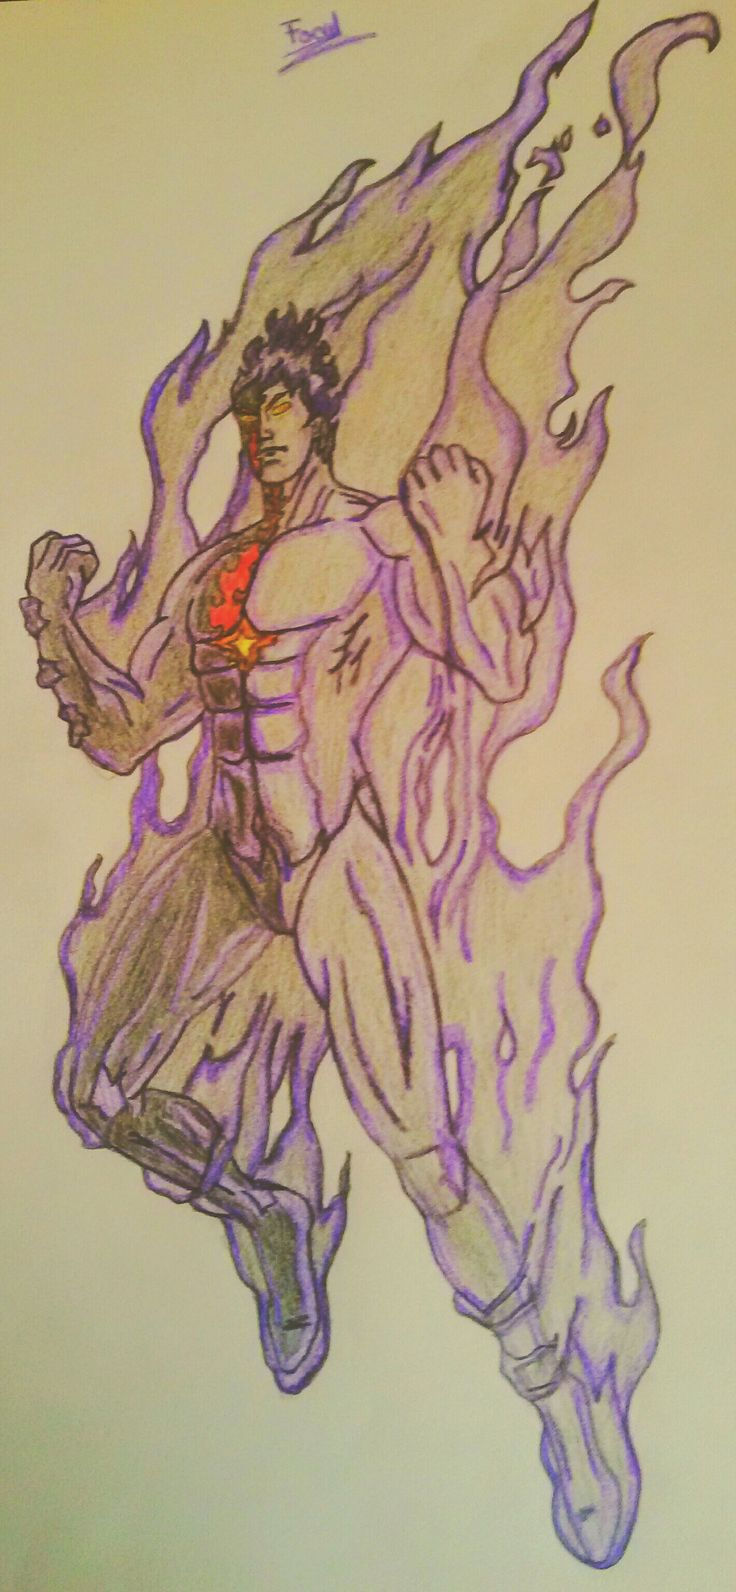 The Netherial Fire Elemental